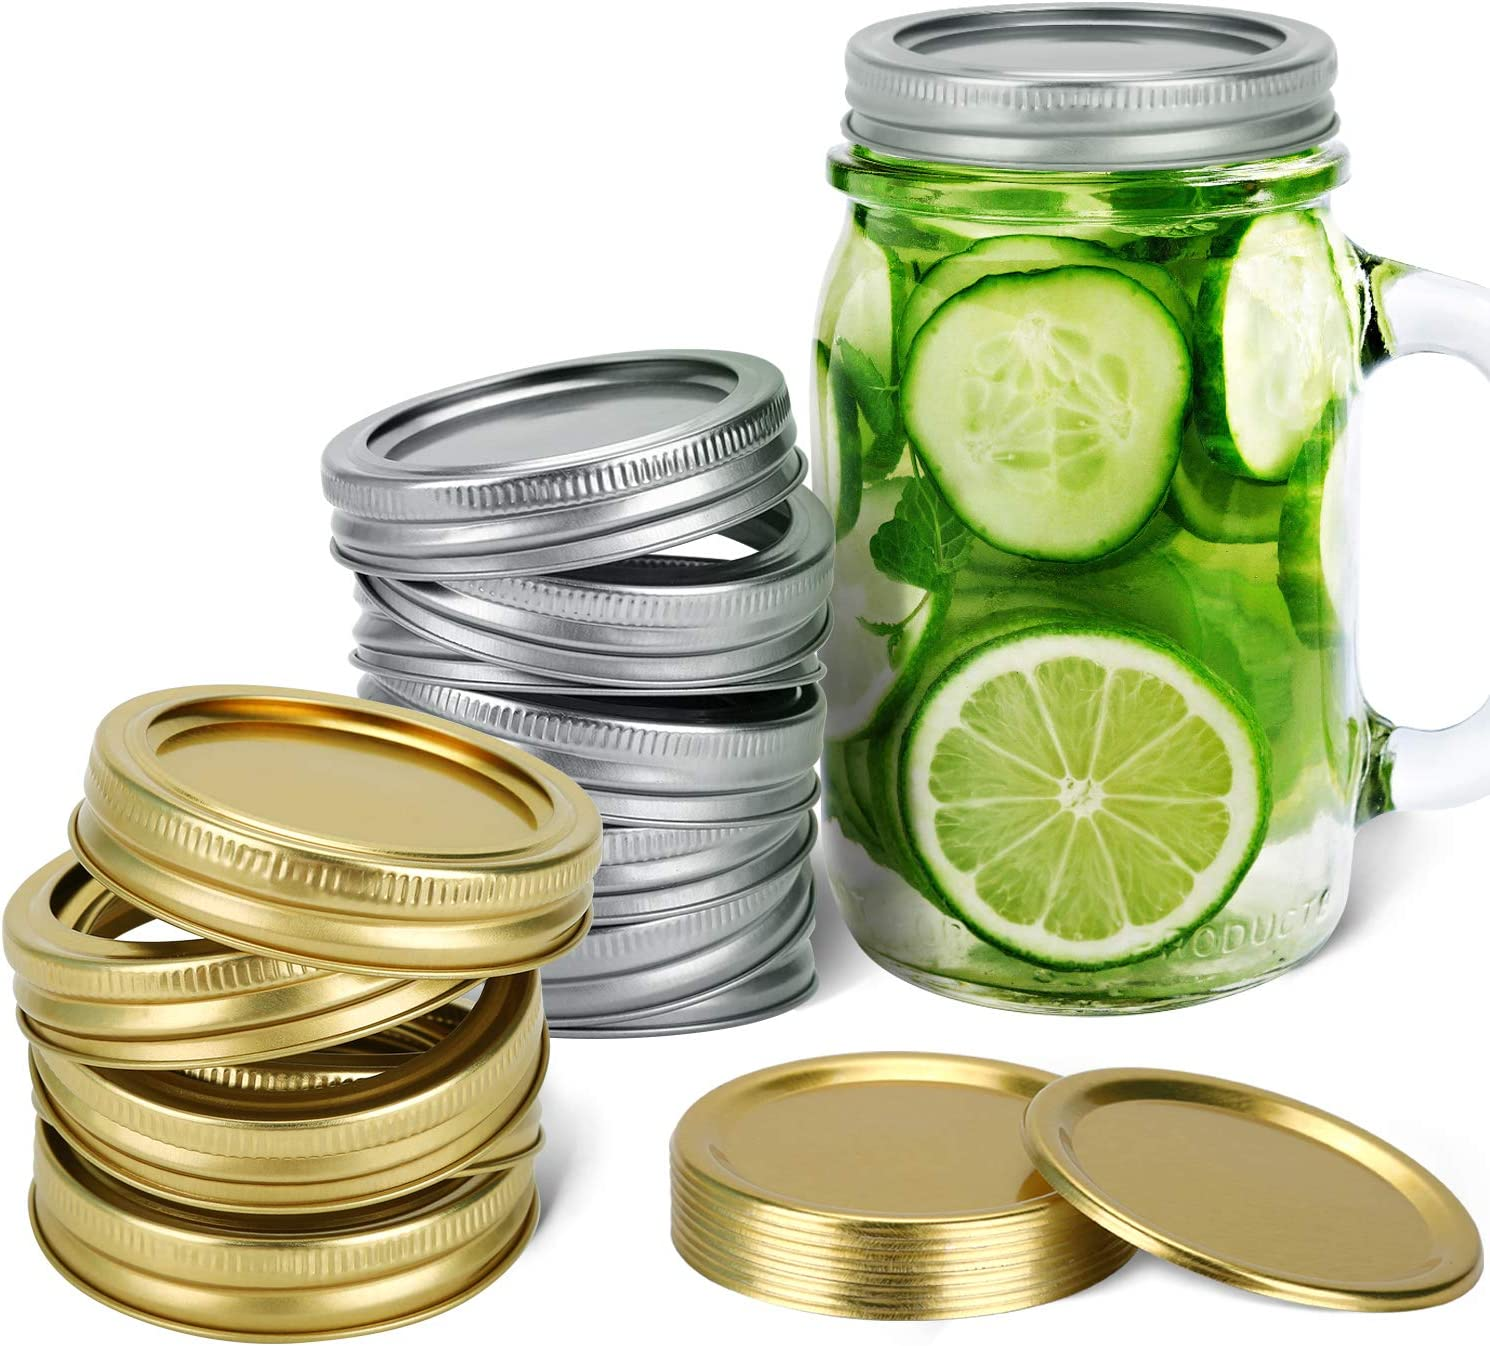 Set of 24 Regular Mouth Canning Lids - 12 Silver Lids & 12 Gold Lids with Bands - Food-Safe Supplies for Canning Mason Jars - Pickling, Packaging, Food Storage Covers - Makes an Airtight Seal